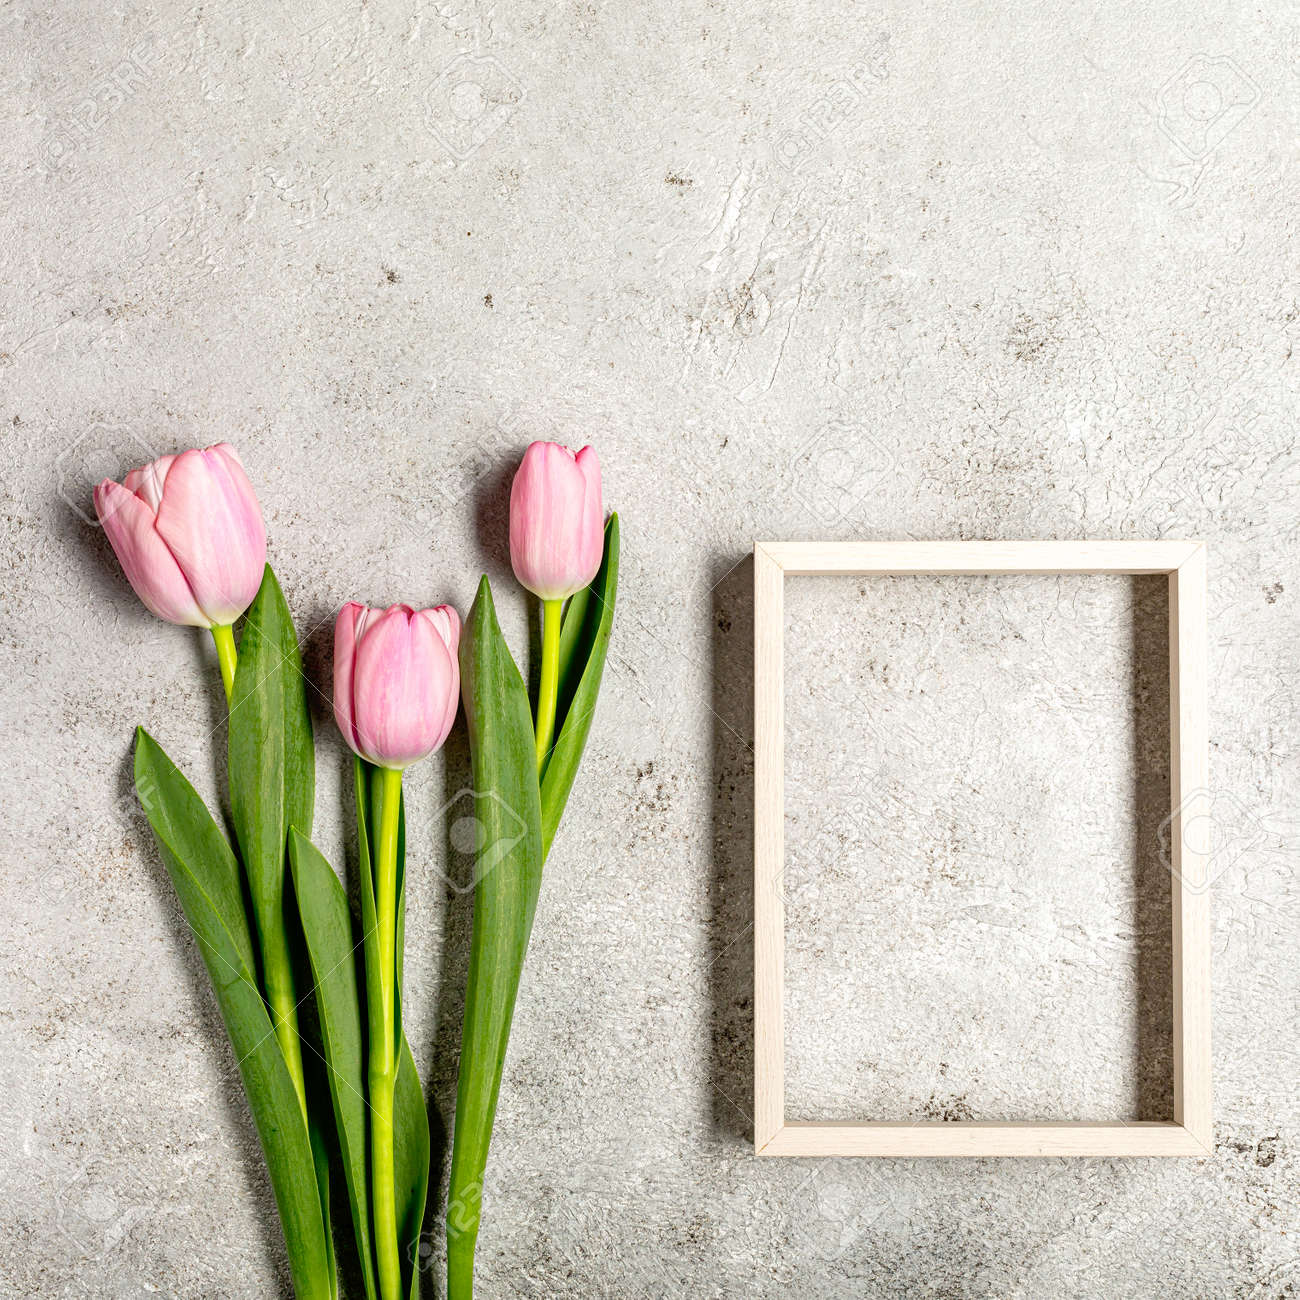 Fresh pink tulip flowers on ultimate gray wall - 167193349